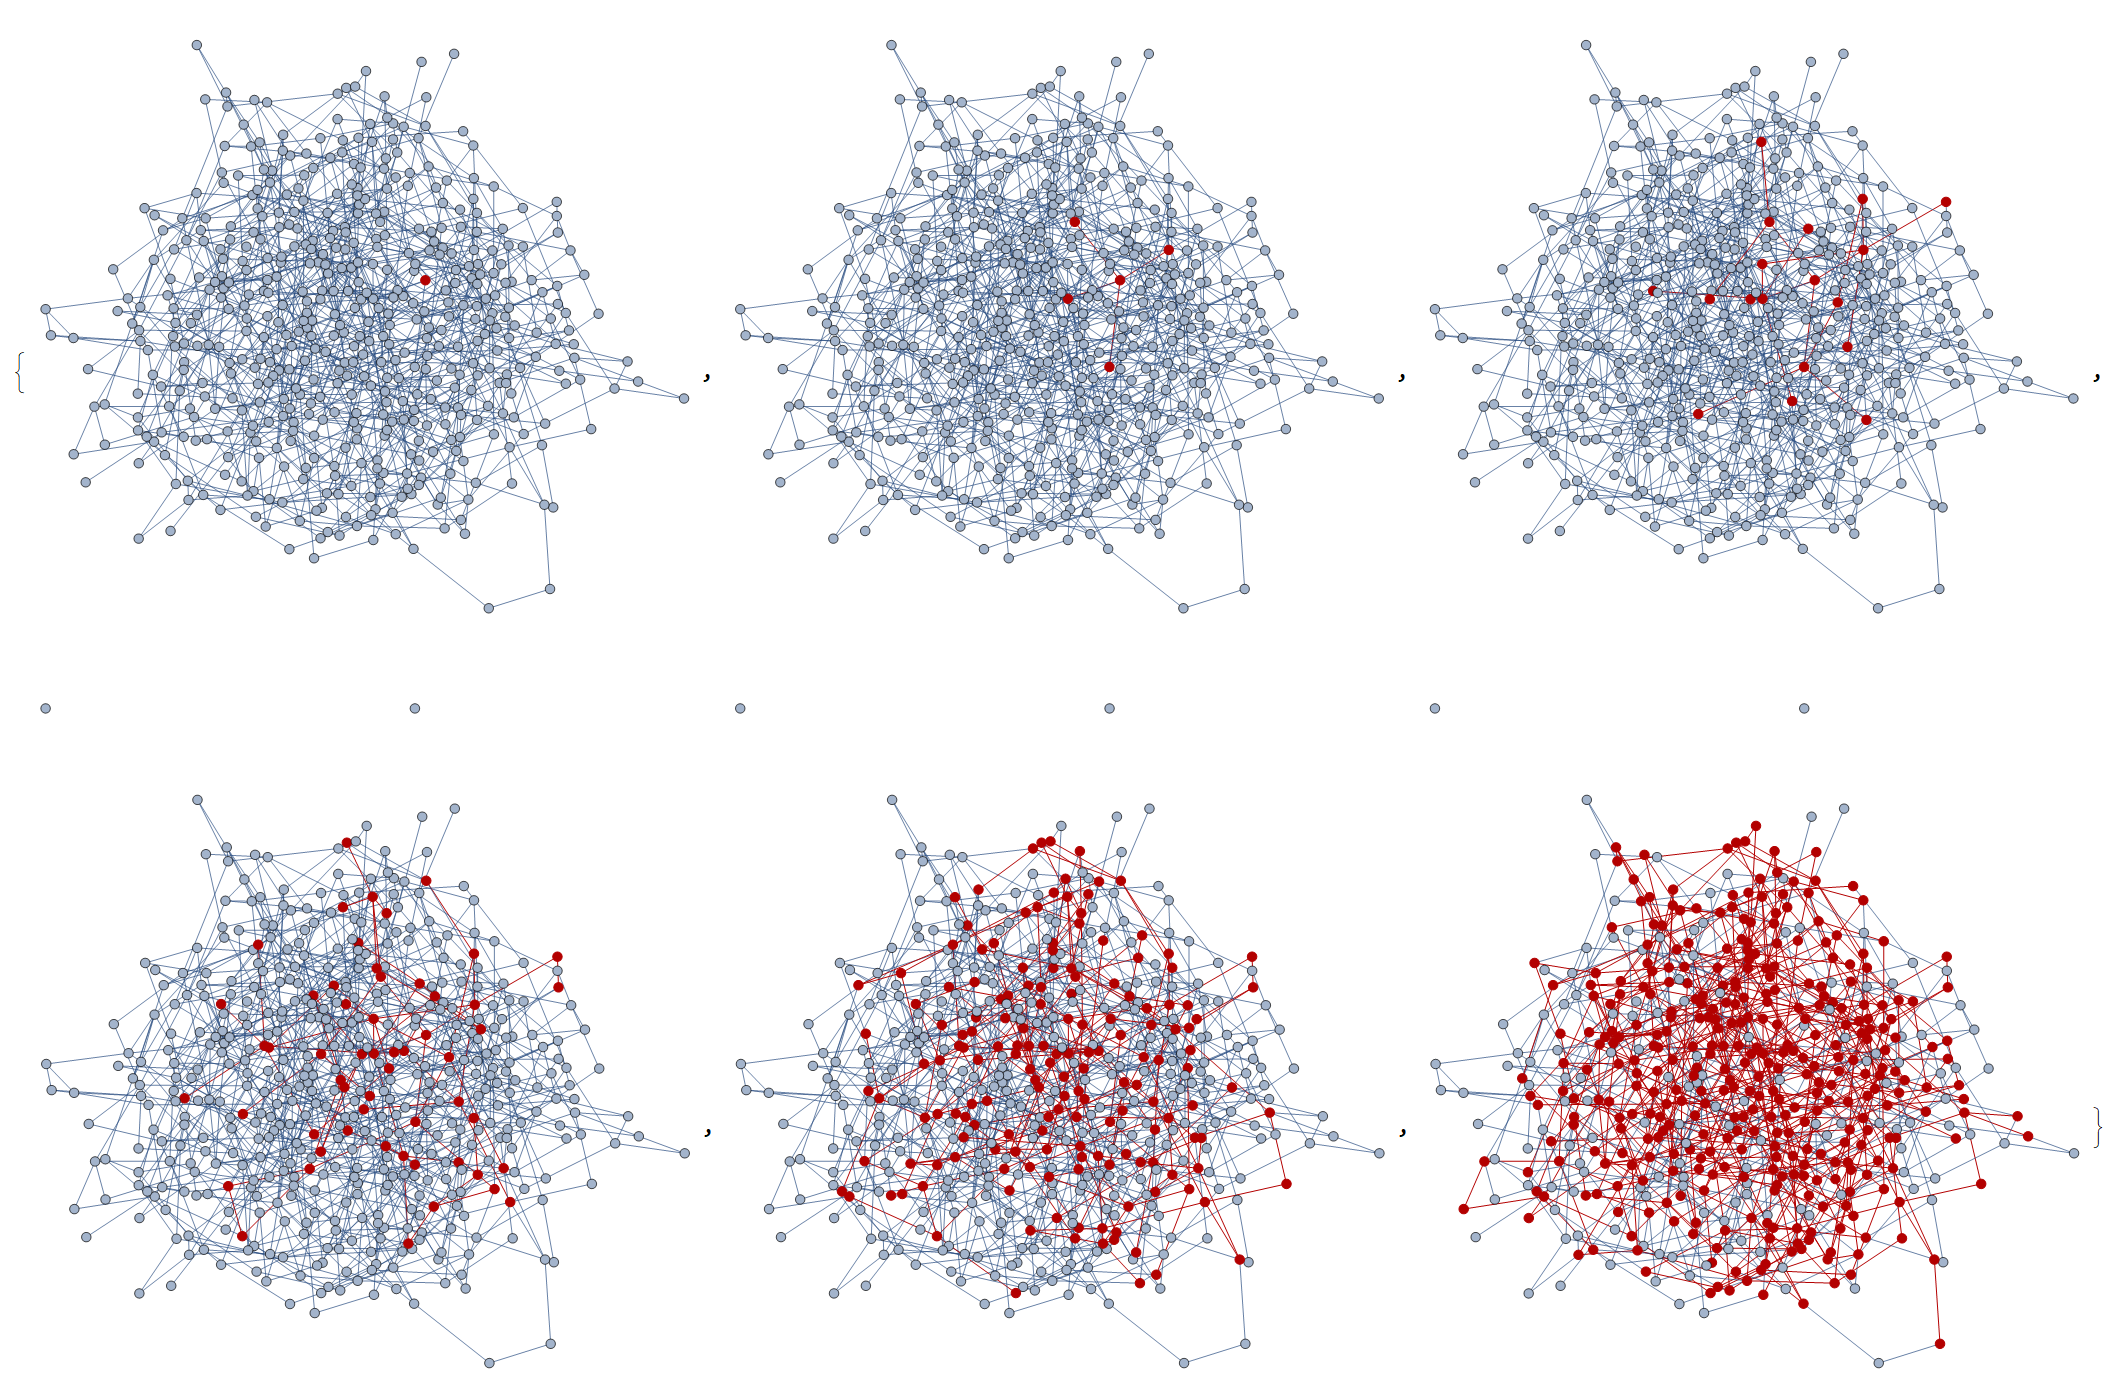 Social networks with various topologies